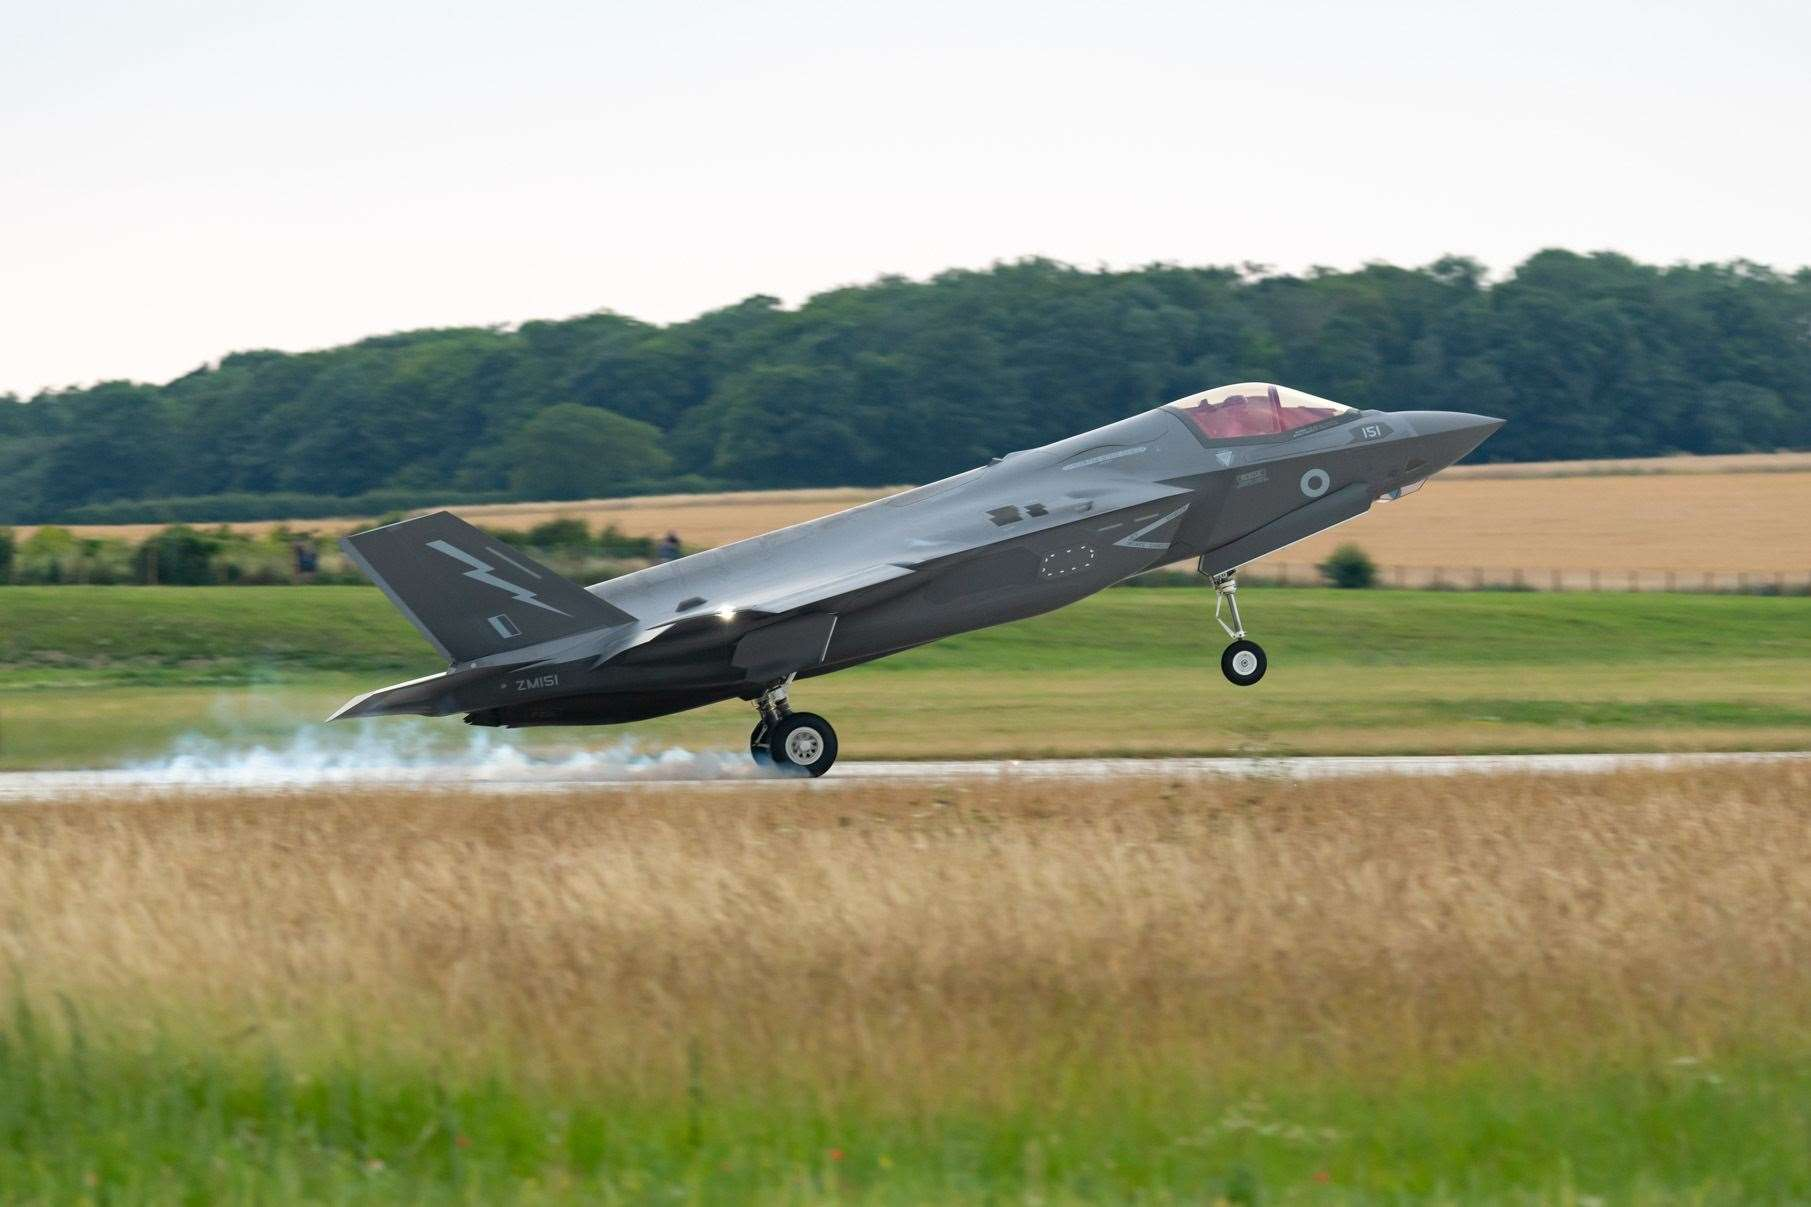 F35 B Lightning II Aircraft of 207 Squadron arrive at their new home RAF Marham after crossing the Atlantic from Beaufort USA. OC207sqn Wg Cdr Scott Williams is the first jet to touch down.. (13934360)